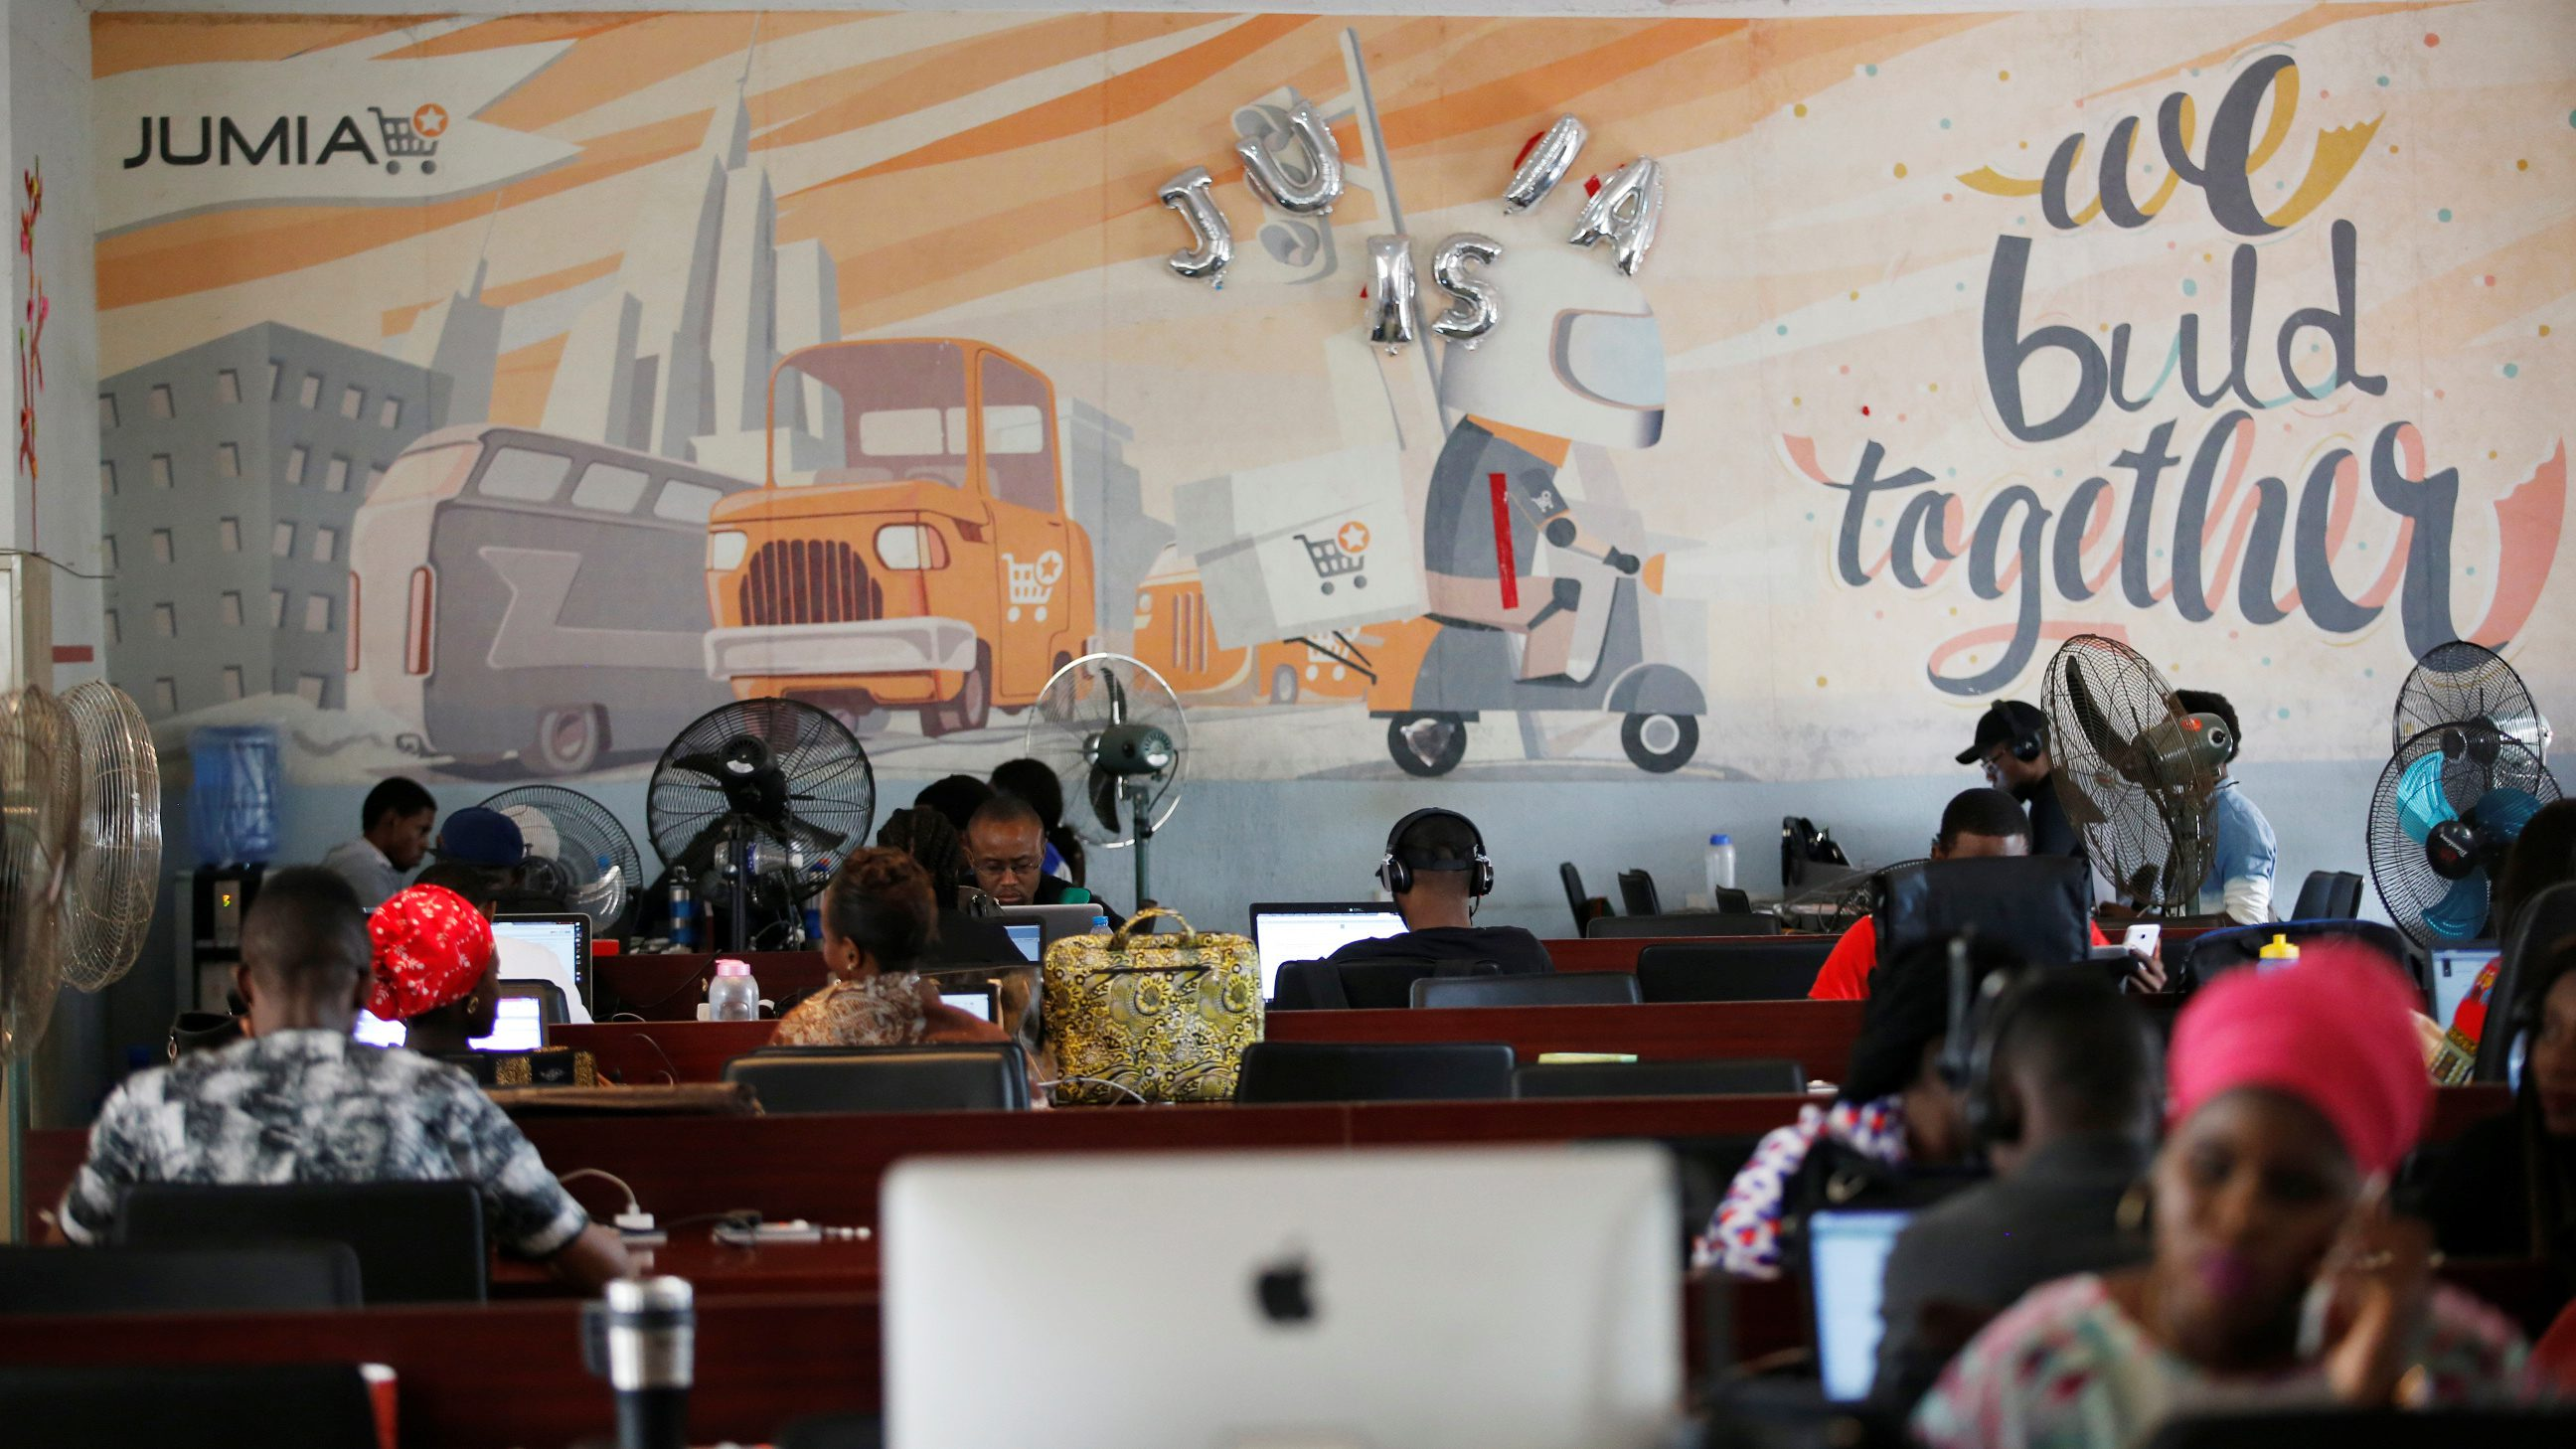 People work on computers at the online store Jumia in Ikeja district, in Lagos